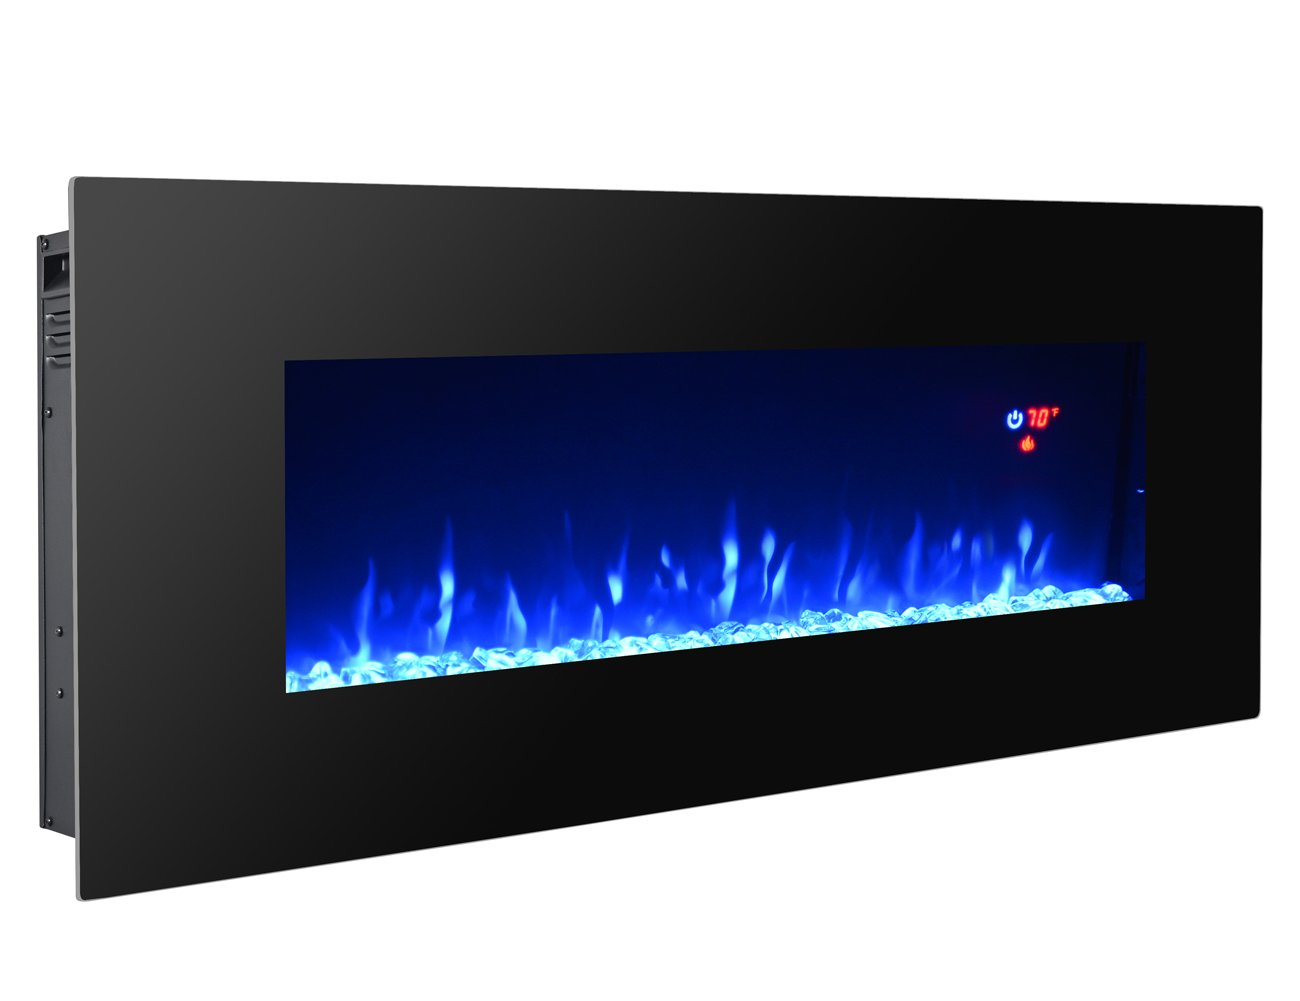 3GPlus 40 Inches Electric Fireplace Wall Recessed Heater Crystal Stone Flame Effect 3 Changeable Color Fireplace, with Remote, 1500 W - Black. by 3GPlus